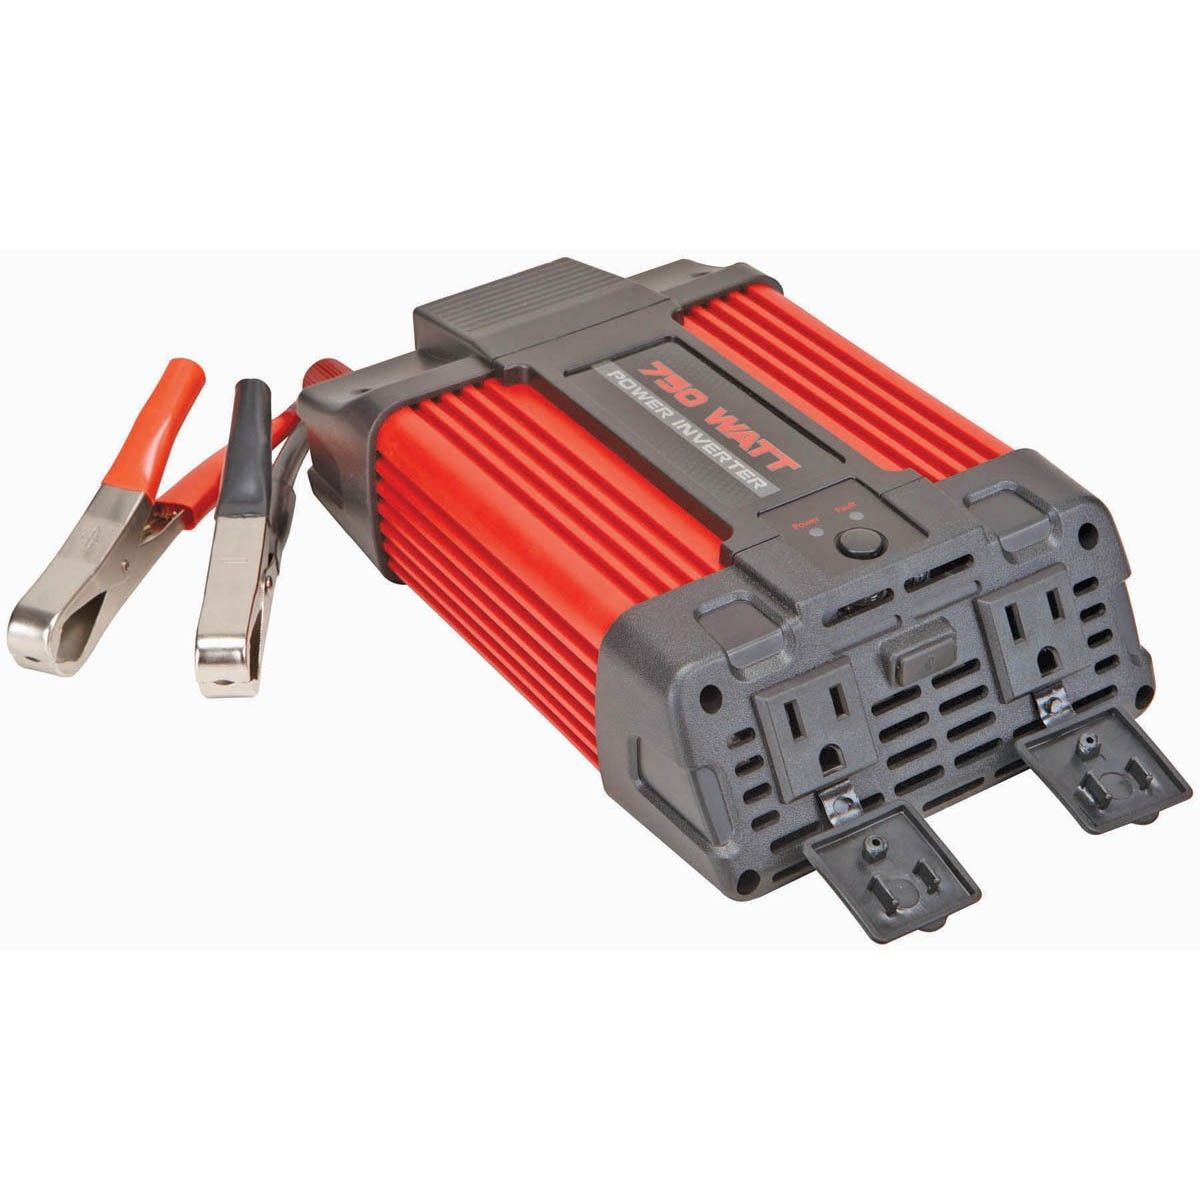 watt continuous watt peak power inverter cen tech 66817 750 watt continuous 1500 watt peak power inverter